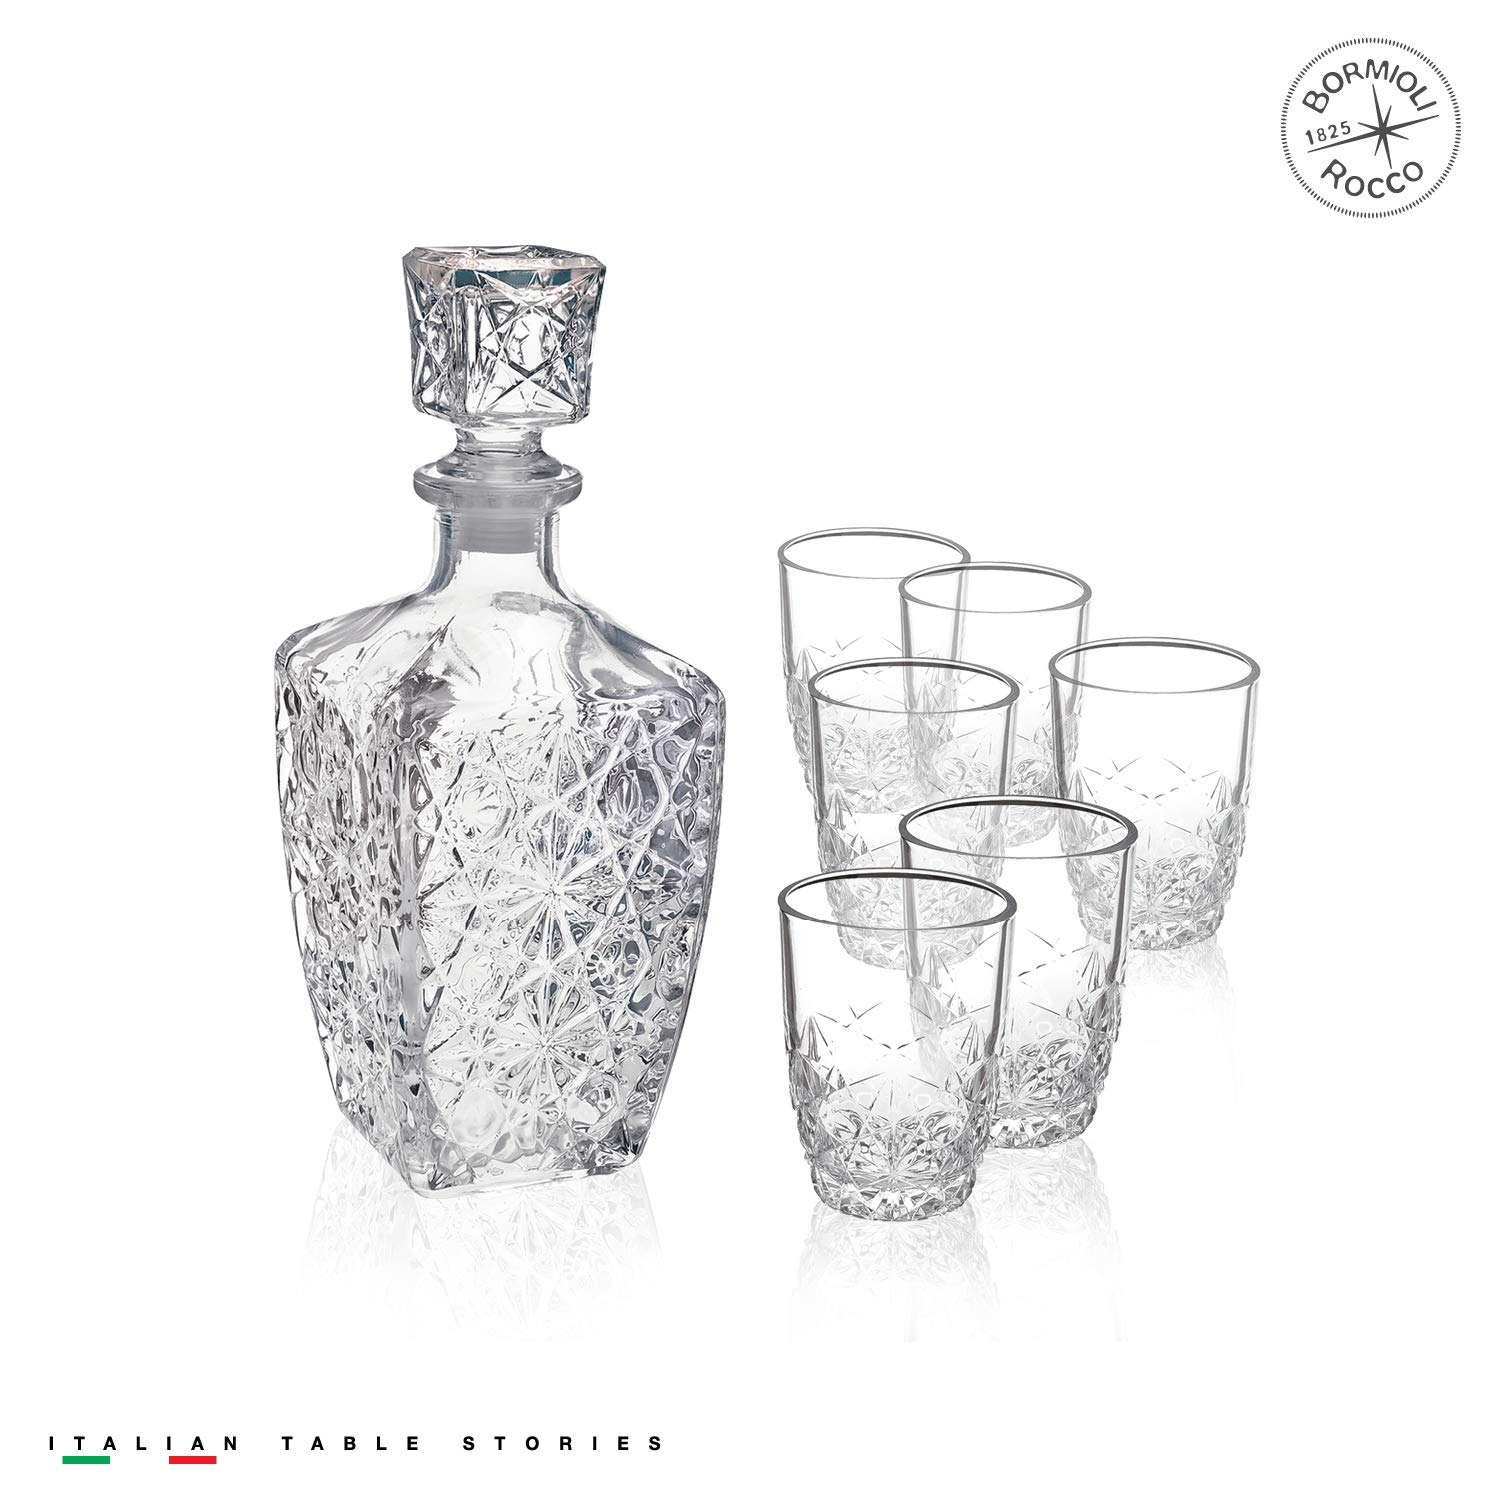 Bormioli Rocco Dedalo Whiskey Gift Set – Sophisticated 26.25oz Diamond Decanter & 6 Etched 8.75oz Whiskey Glasses With Sparkling Star-Cut Detailing – For Whiskey, Bourbon, Scotch & Liquor 226040S1A021990